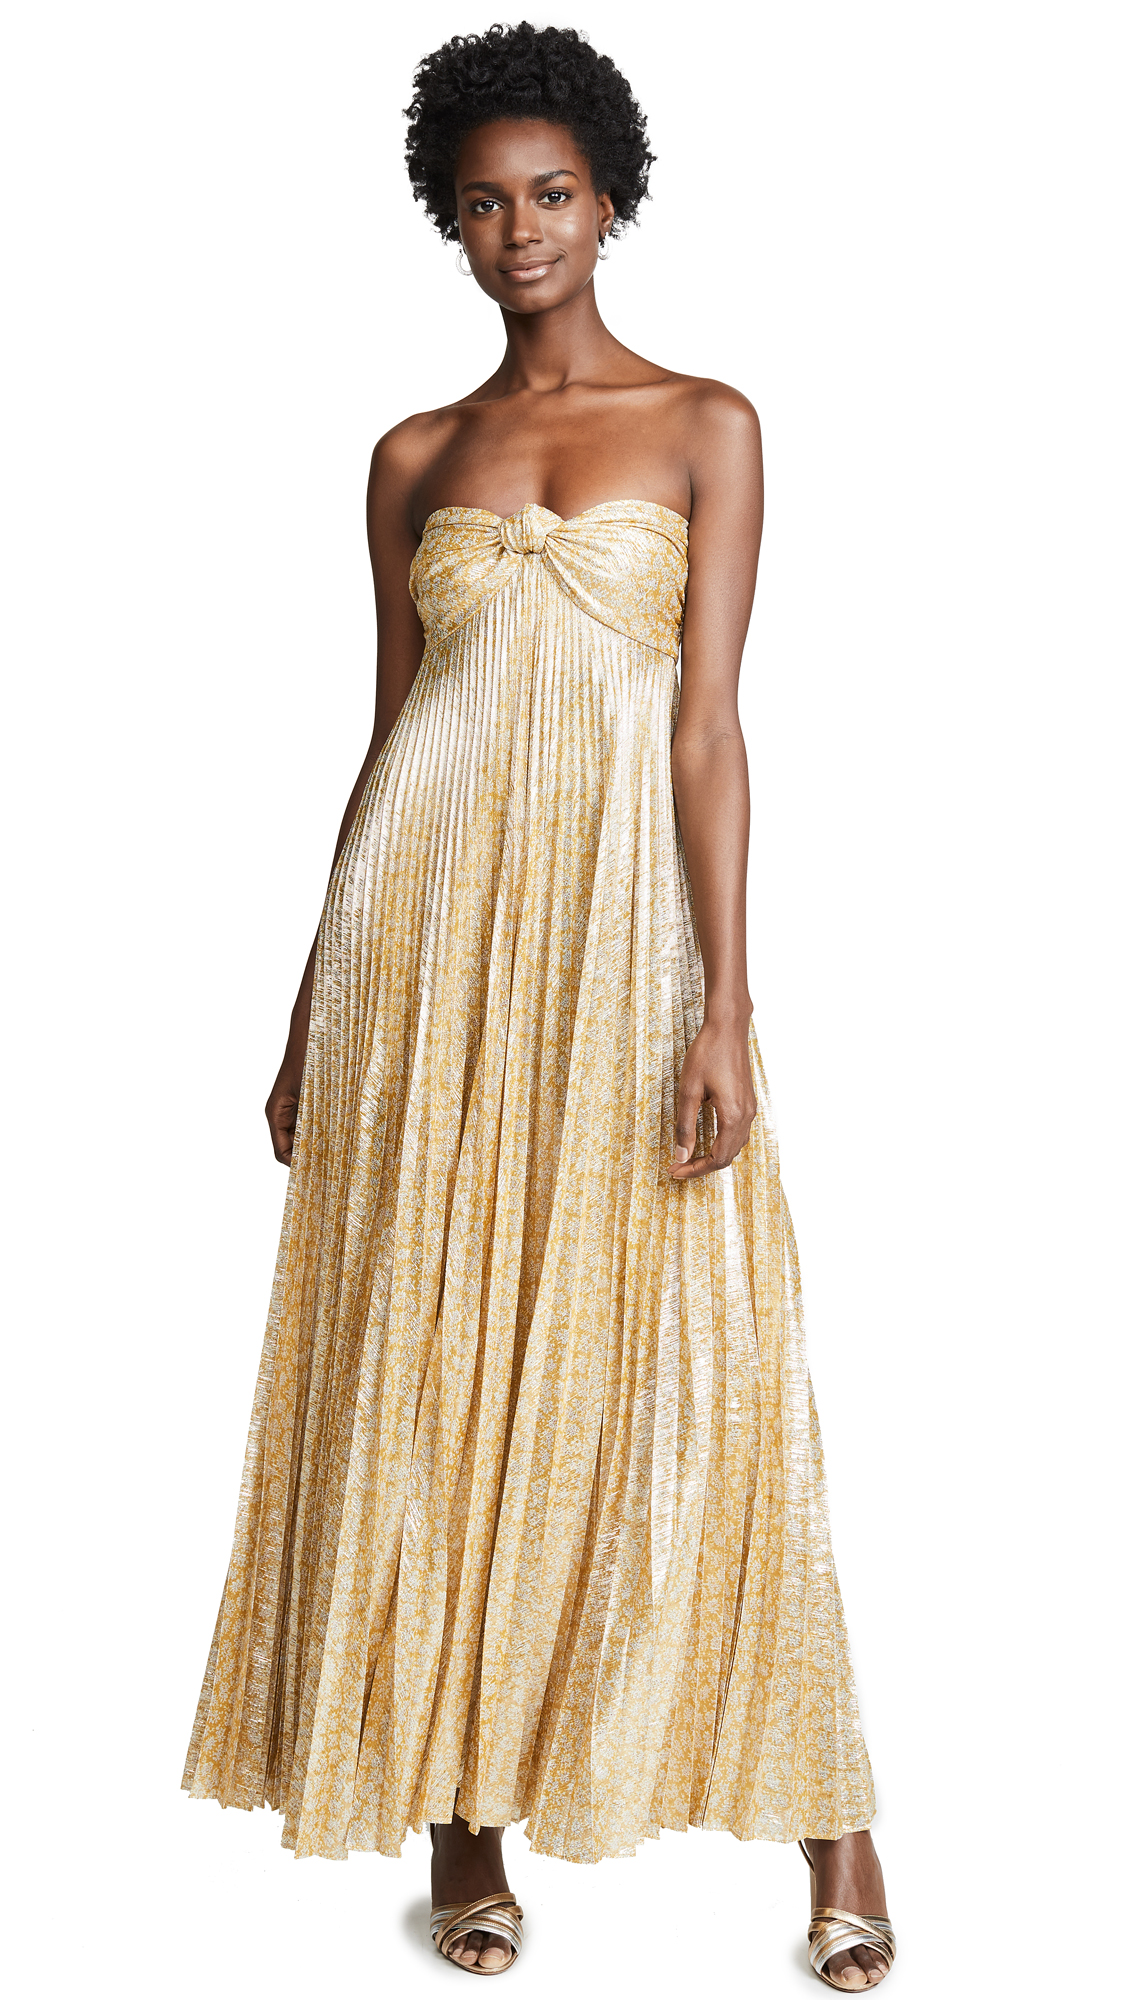 Joya Strapless Sweetheart Lamé Pleated A-Line Dress in Gold Lame